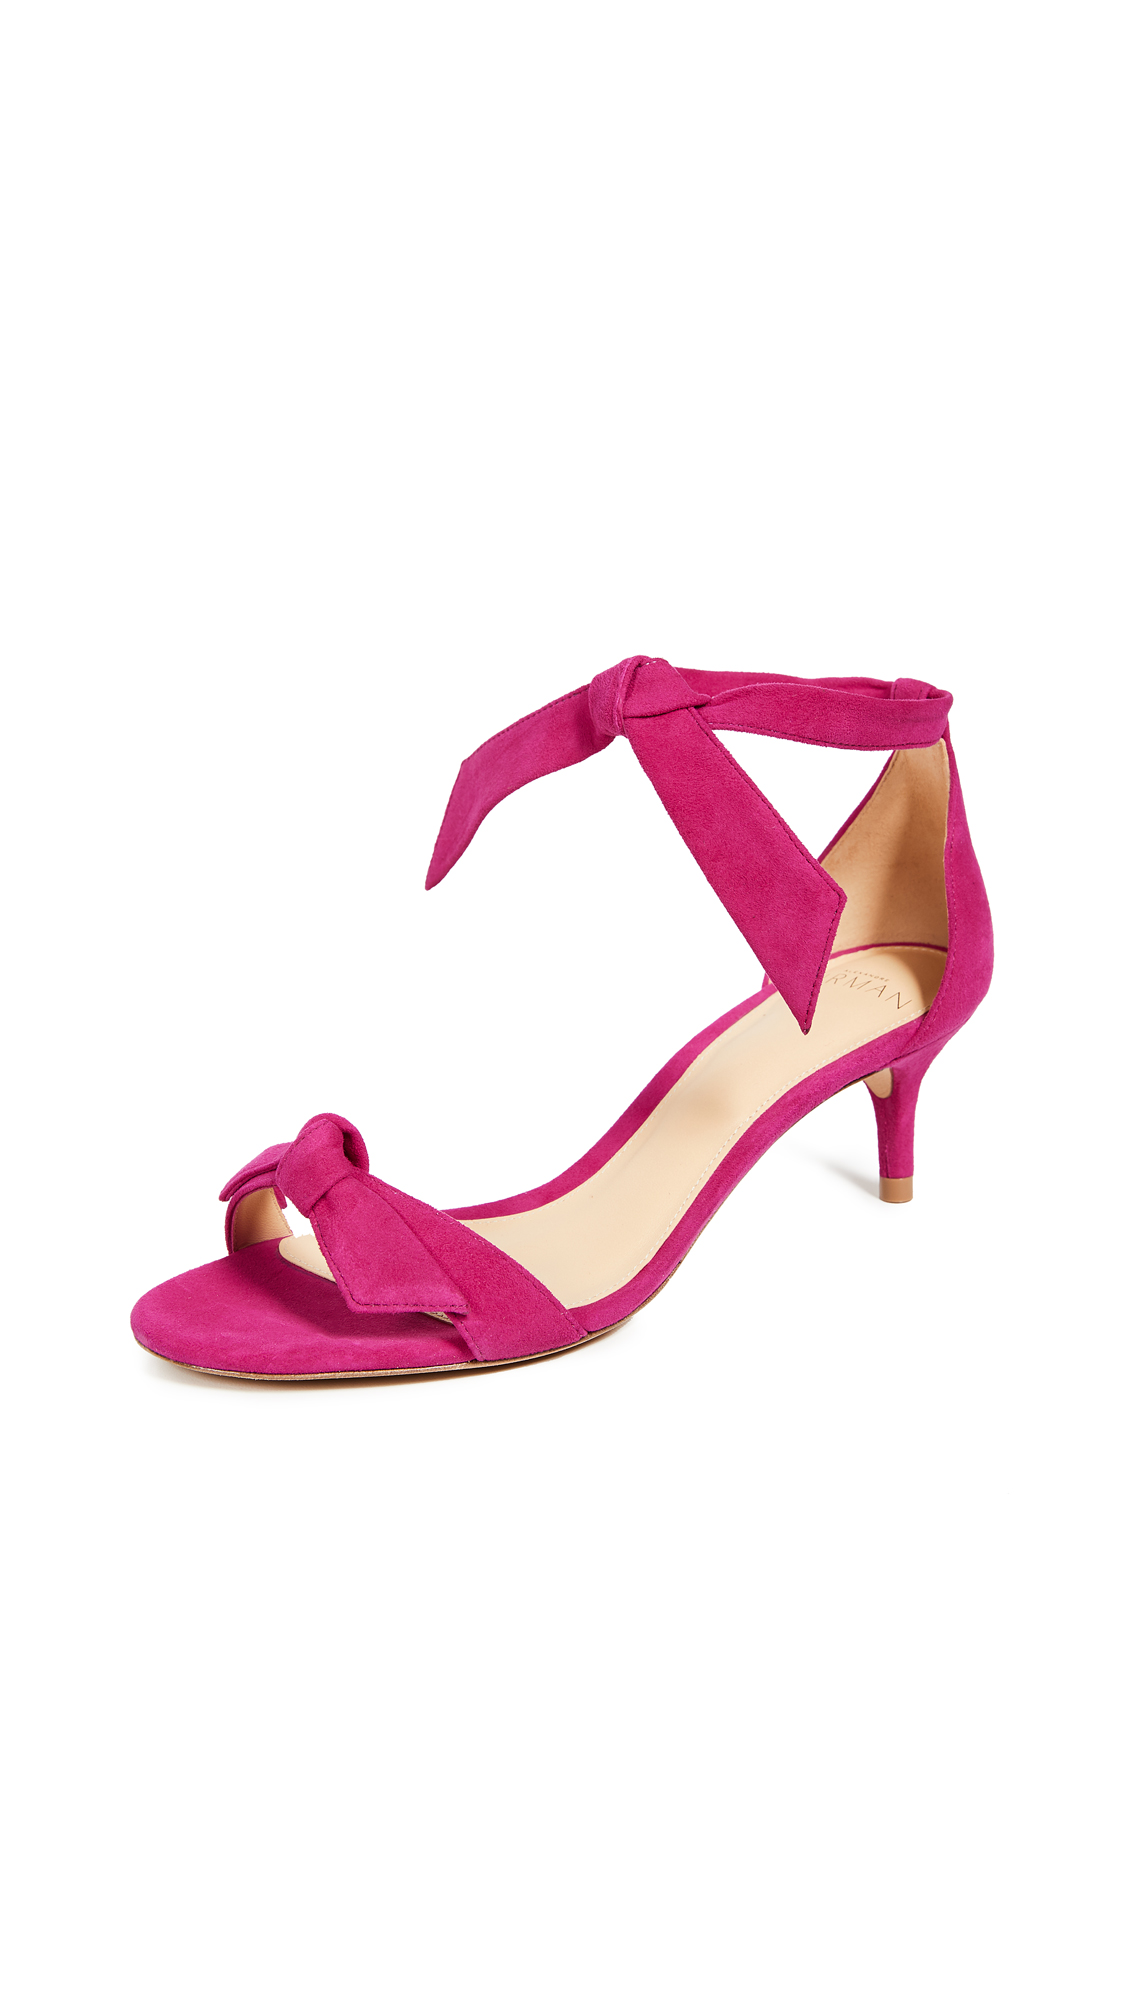 Alexandre Birman Clarita 55mm Sandals - Raspberry